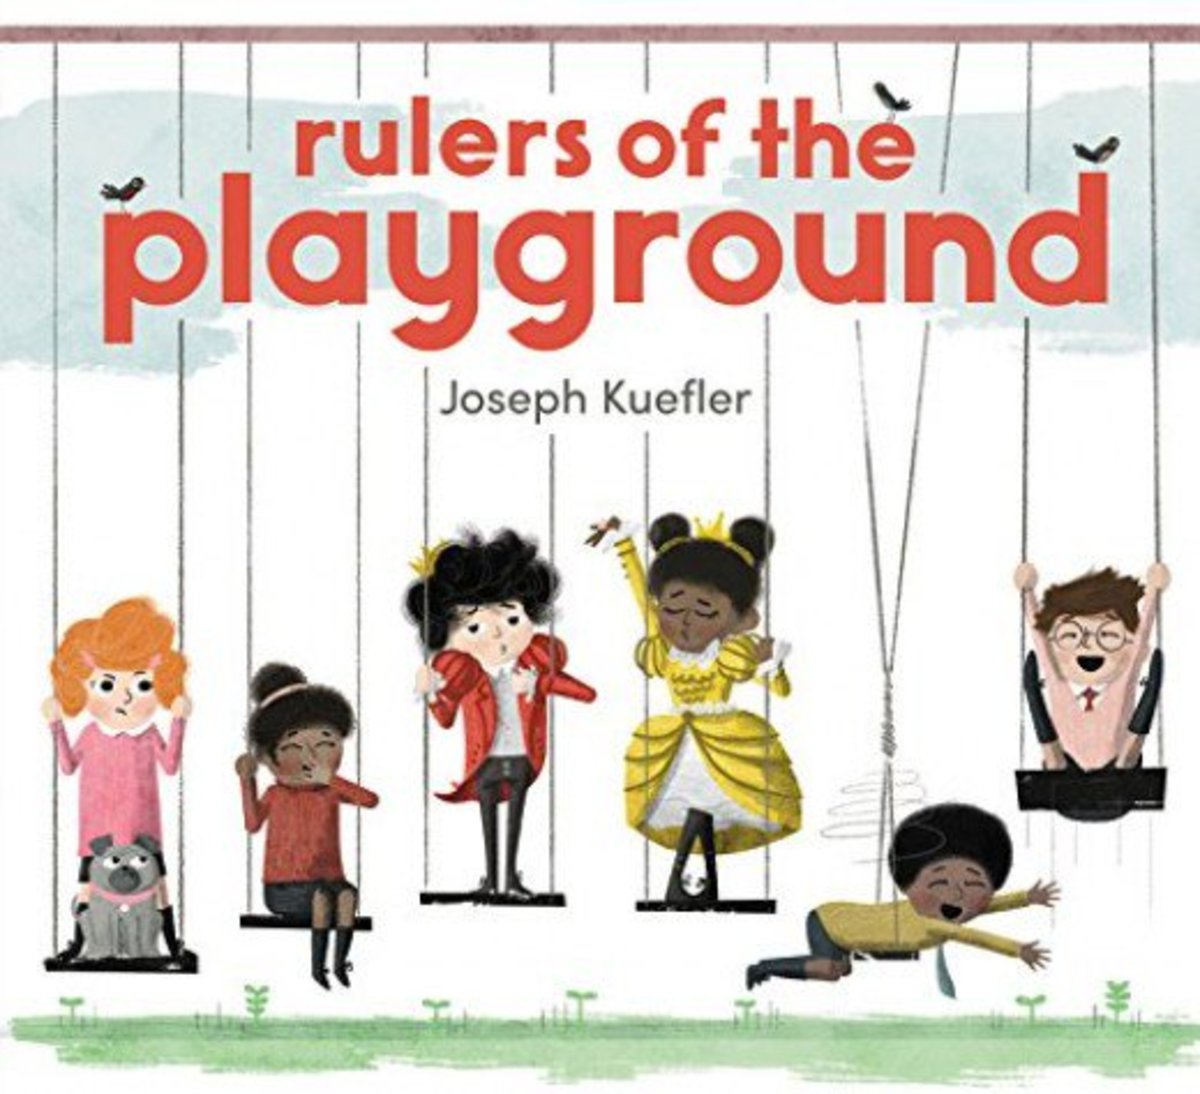 Rulers of the Playground by Joseph Kuefler